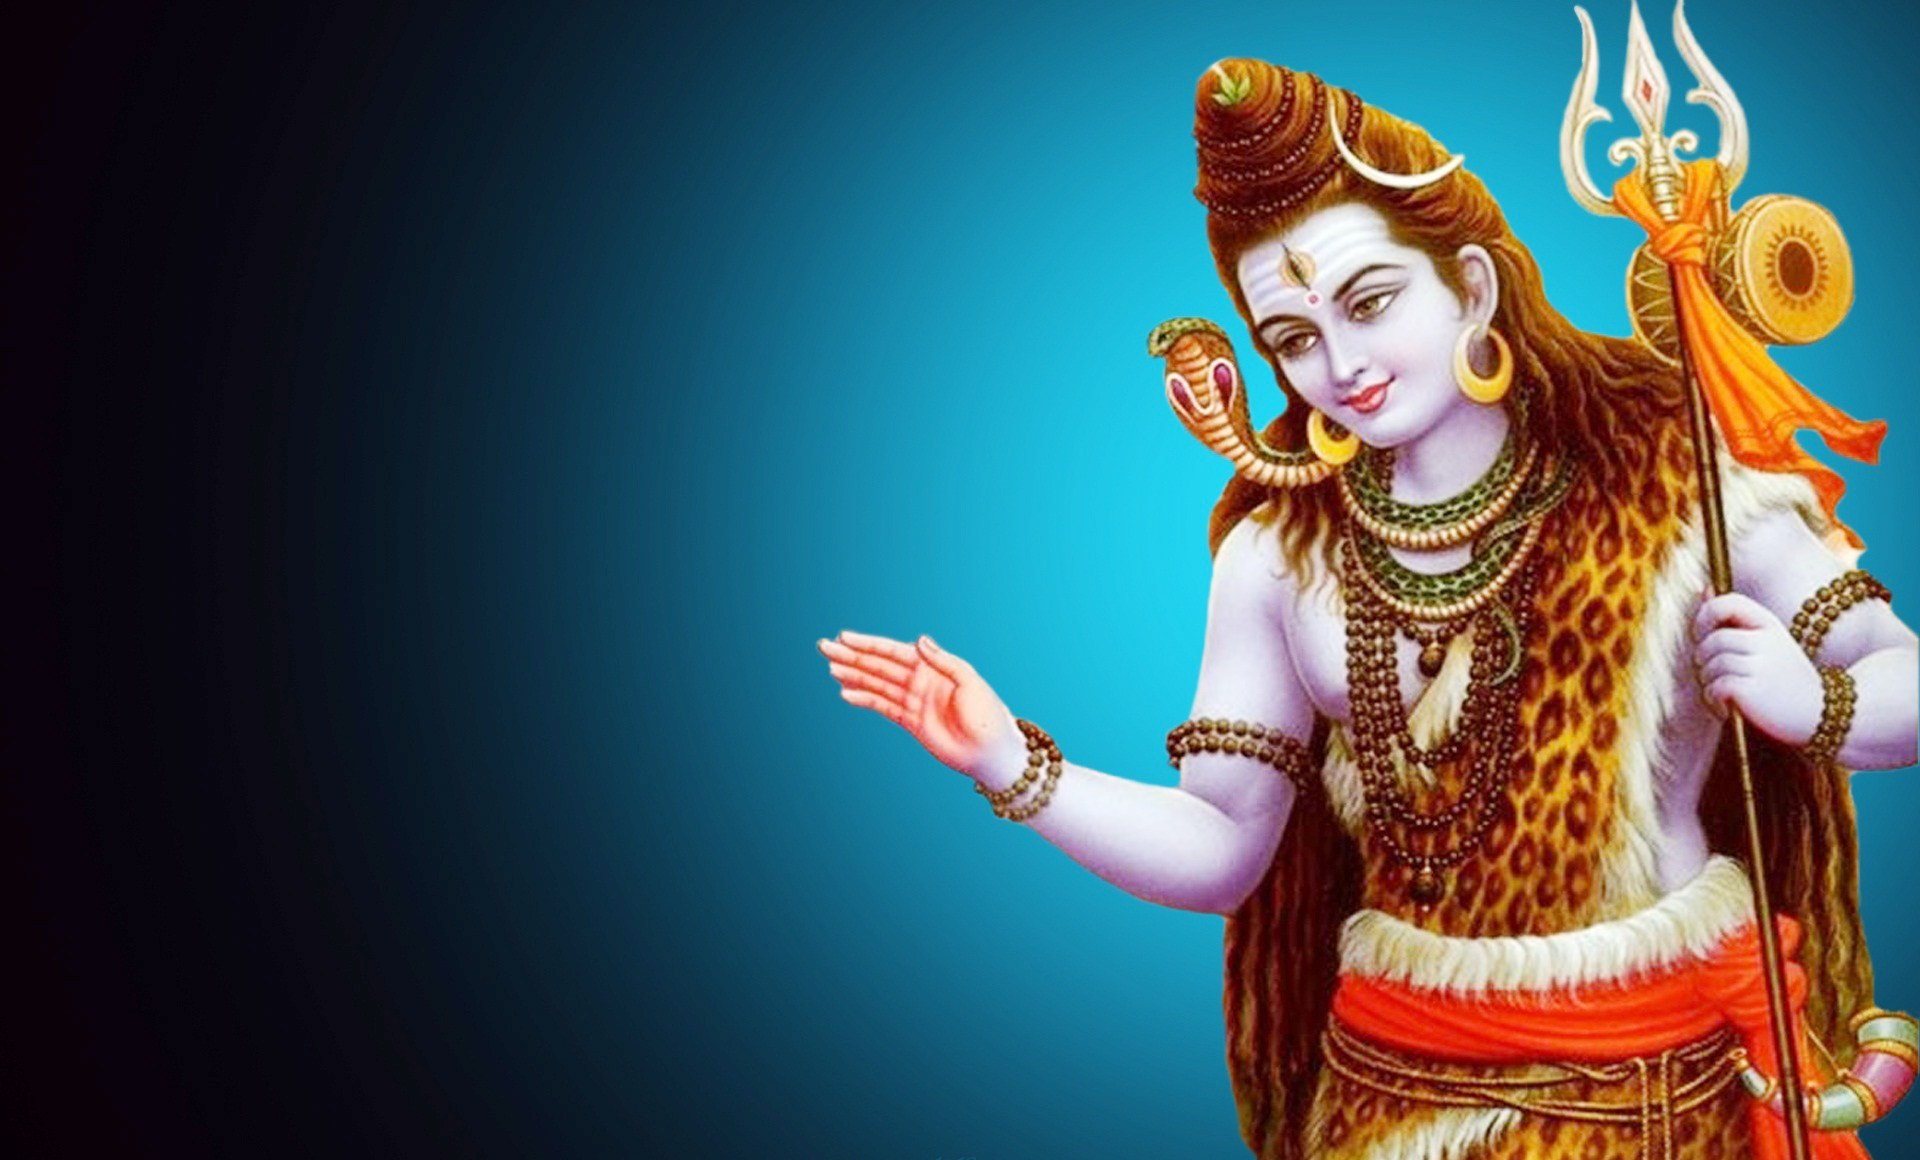 Full hd wallpaper of god shiva